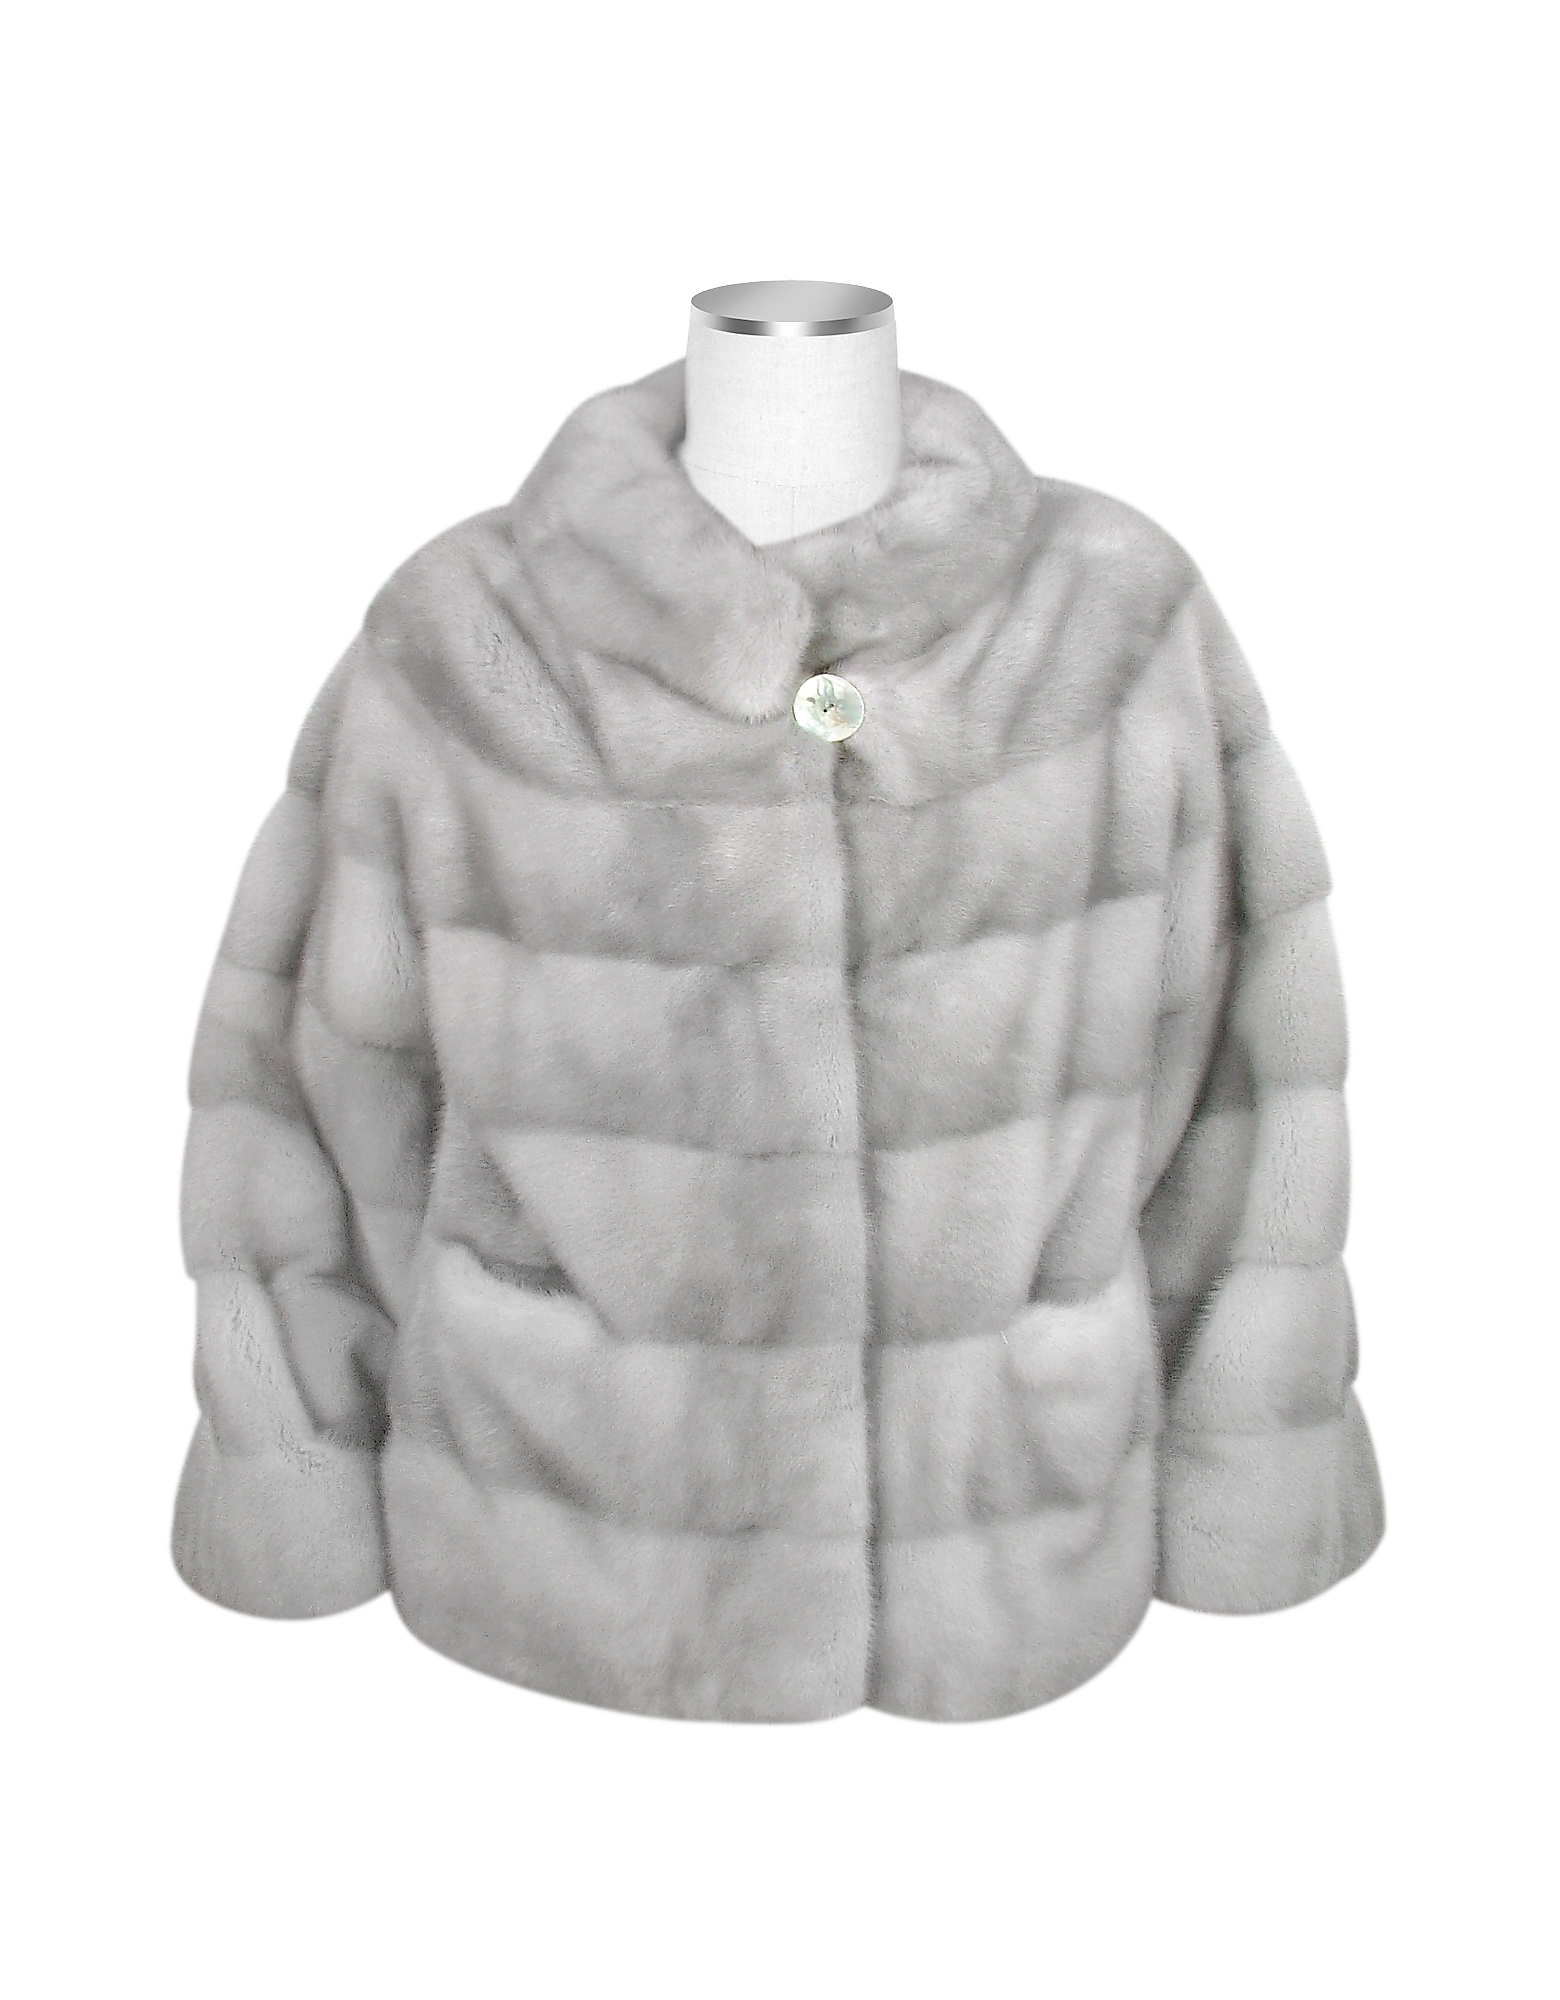 Ultimate Luxury Collection Gray Mink Fur Jacket